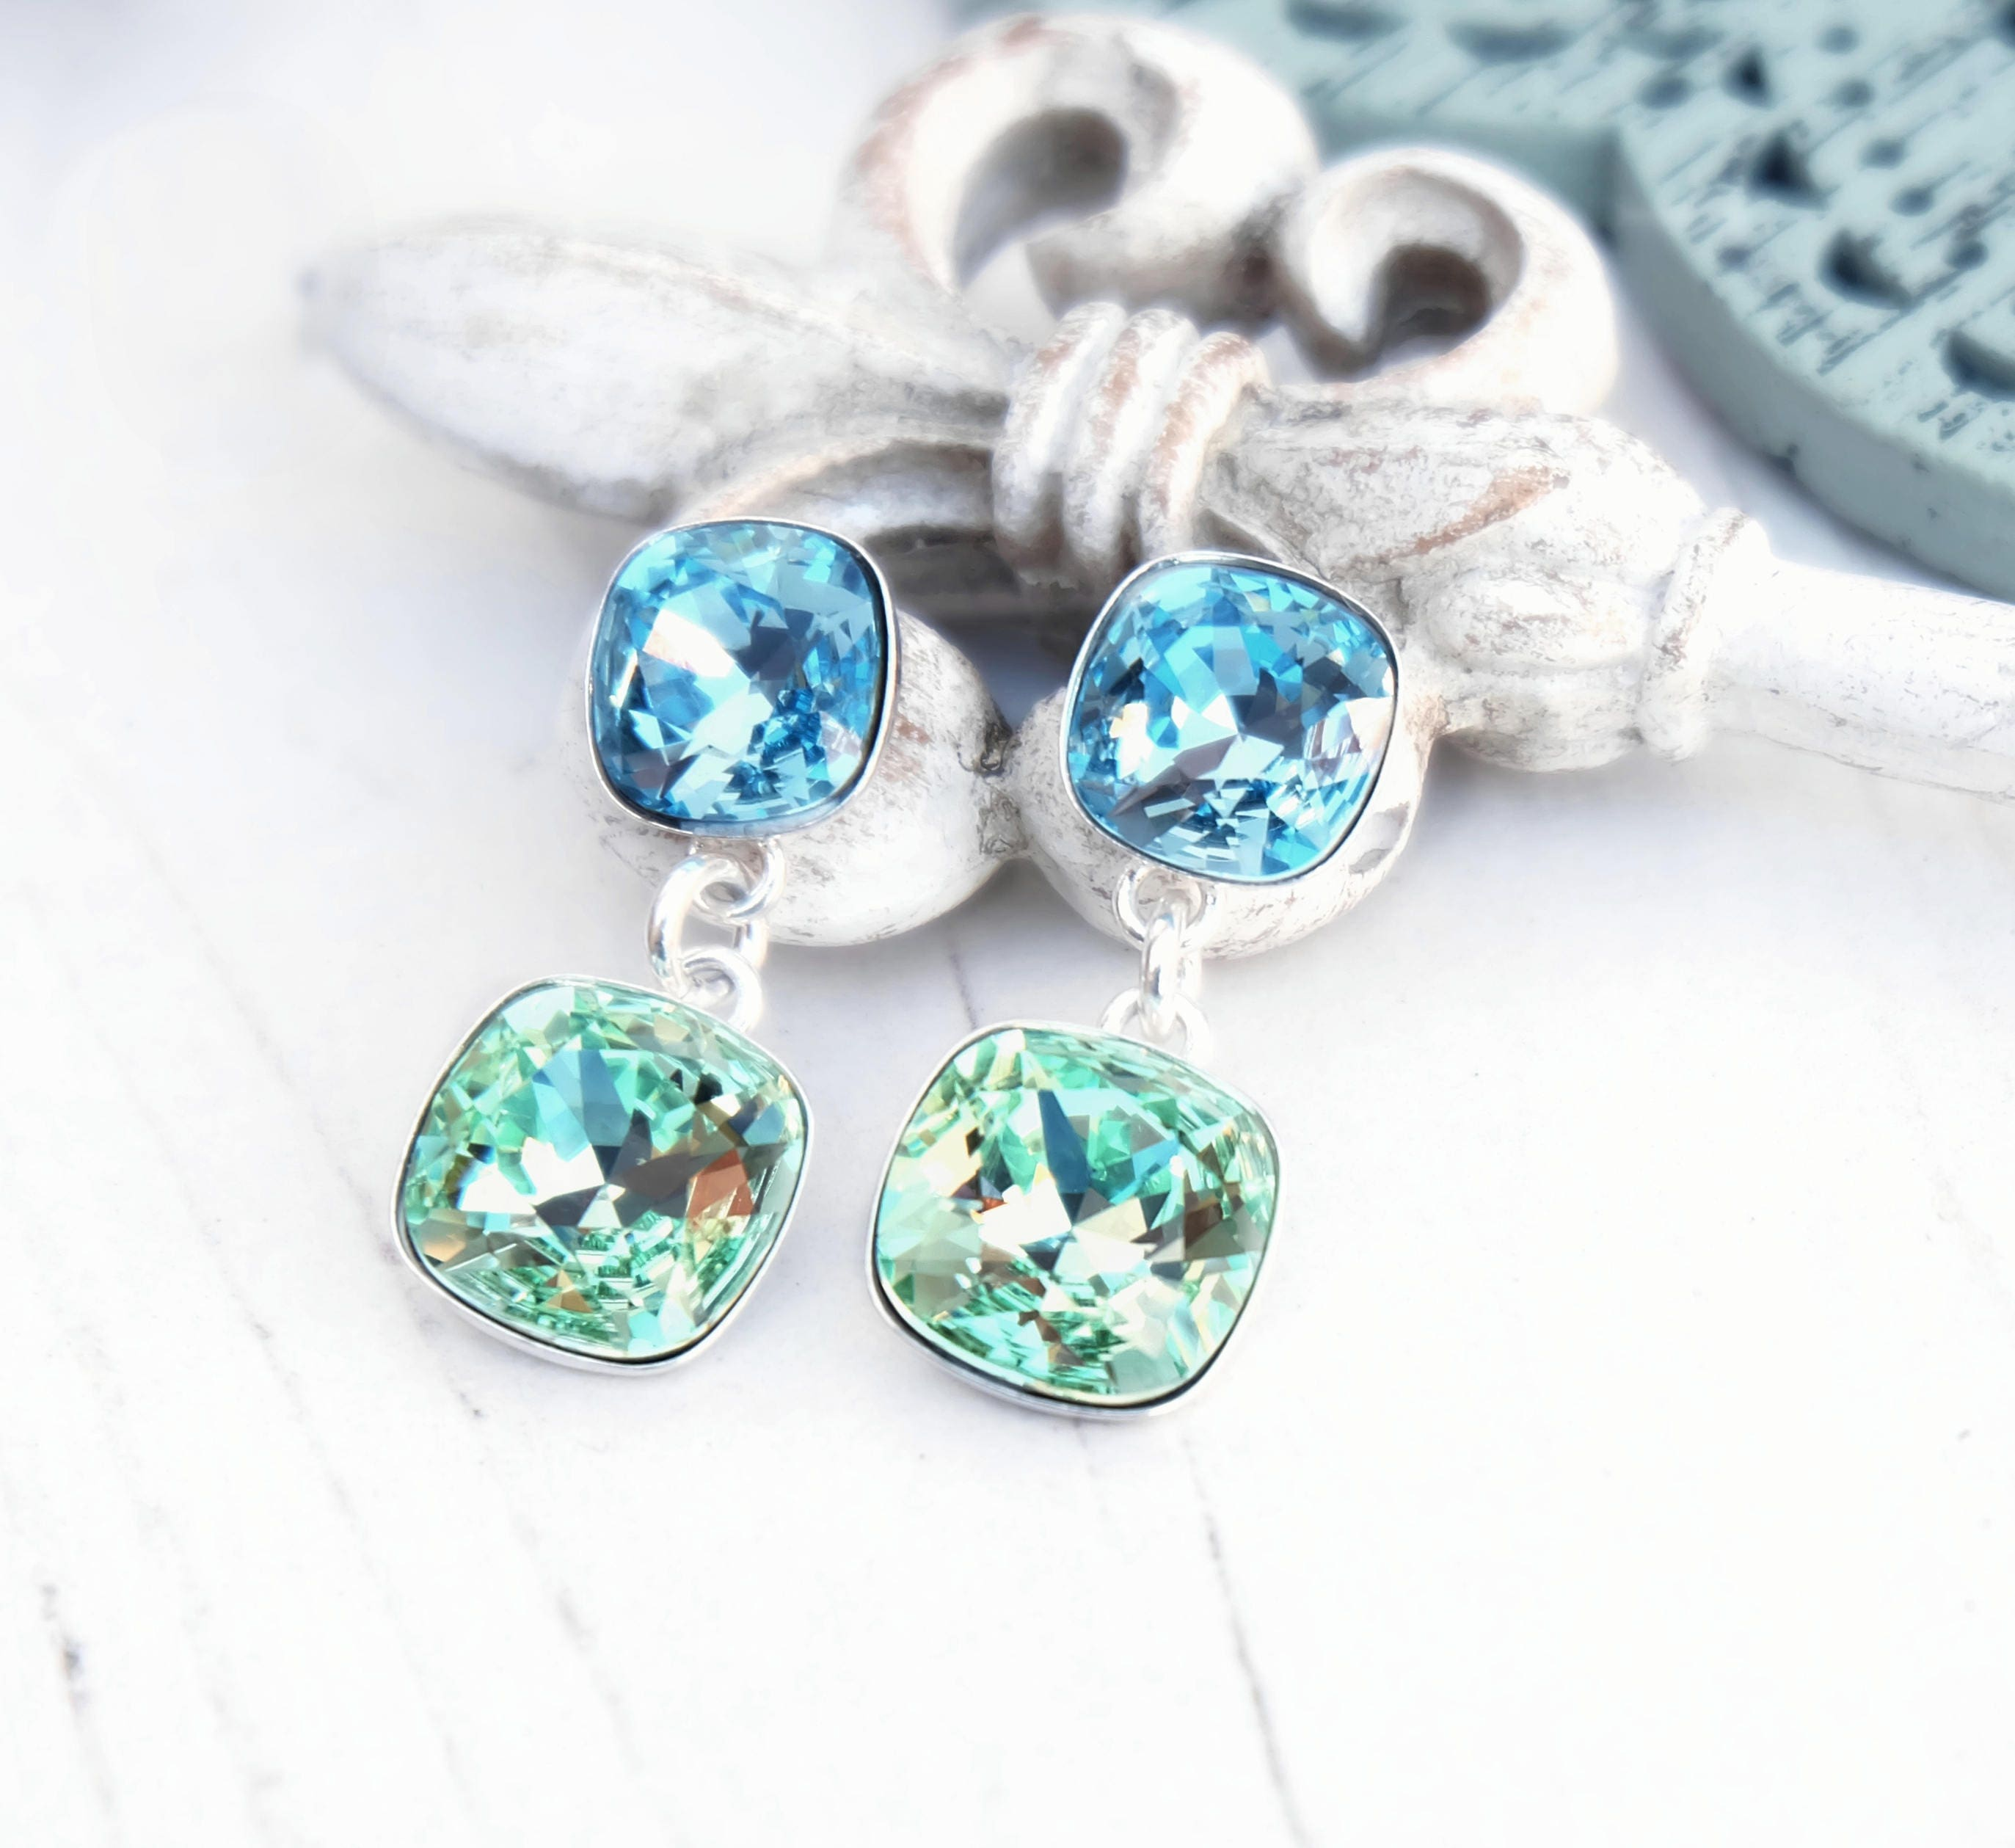 Aquamarine light green Swarovski crystal earrings Bridal wedding bridesmaids earrings Sterling Silver jewellery Square cushion cut crystal 1